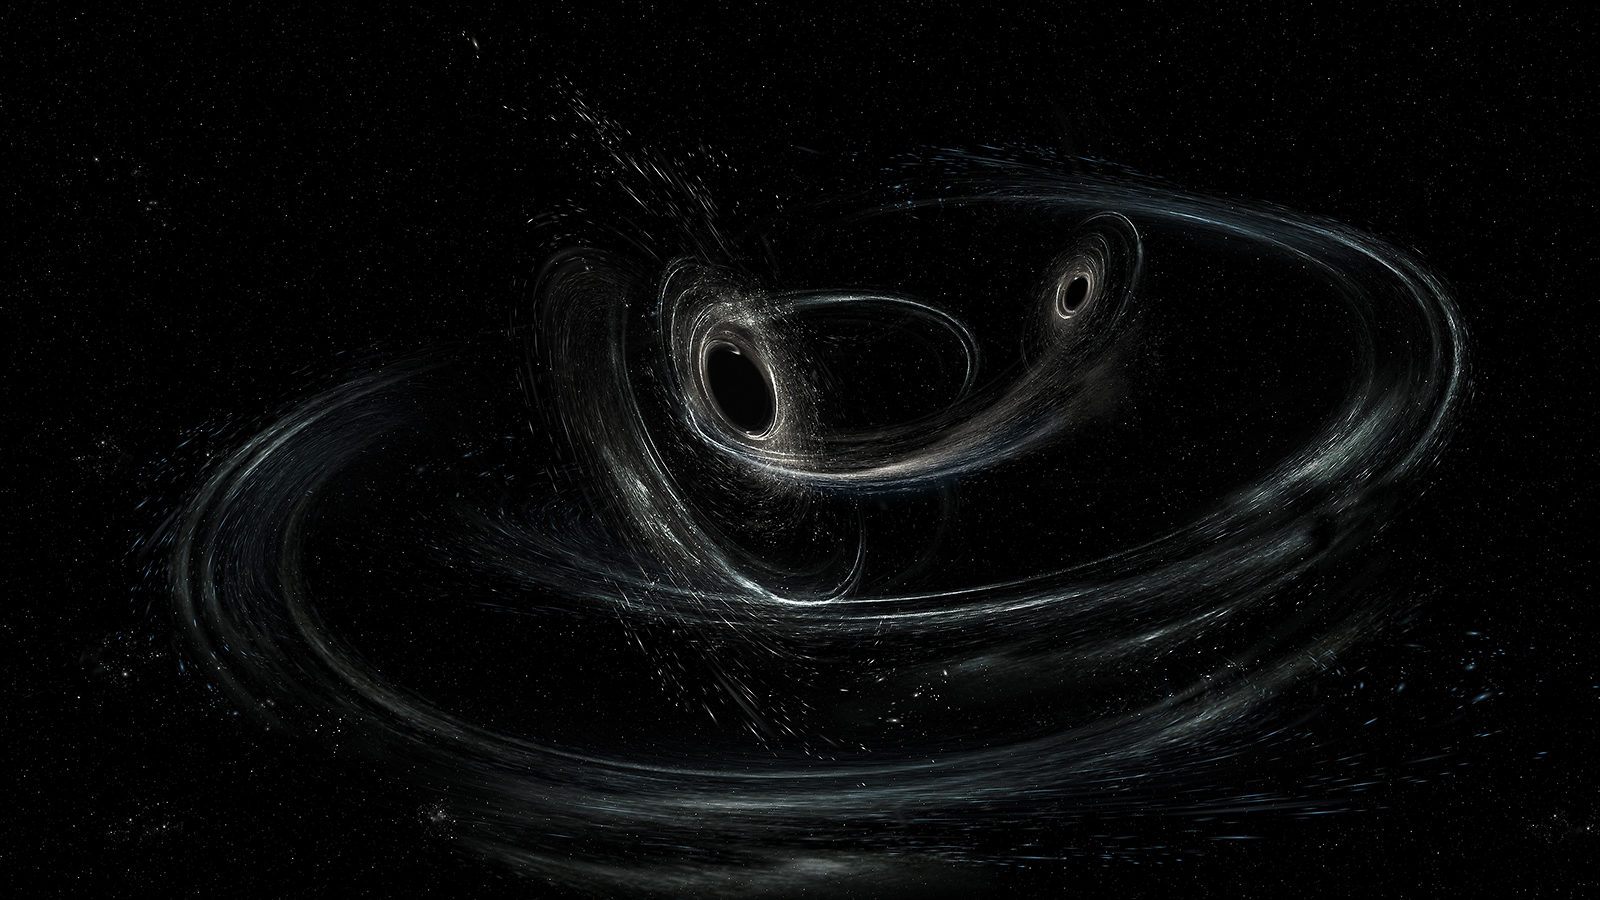 Third Gravitational Wave Event Detected